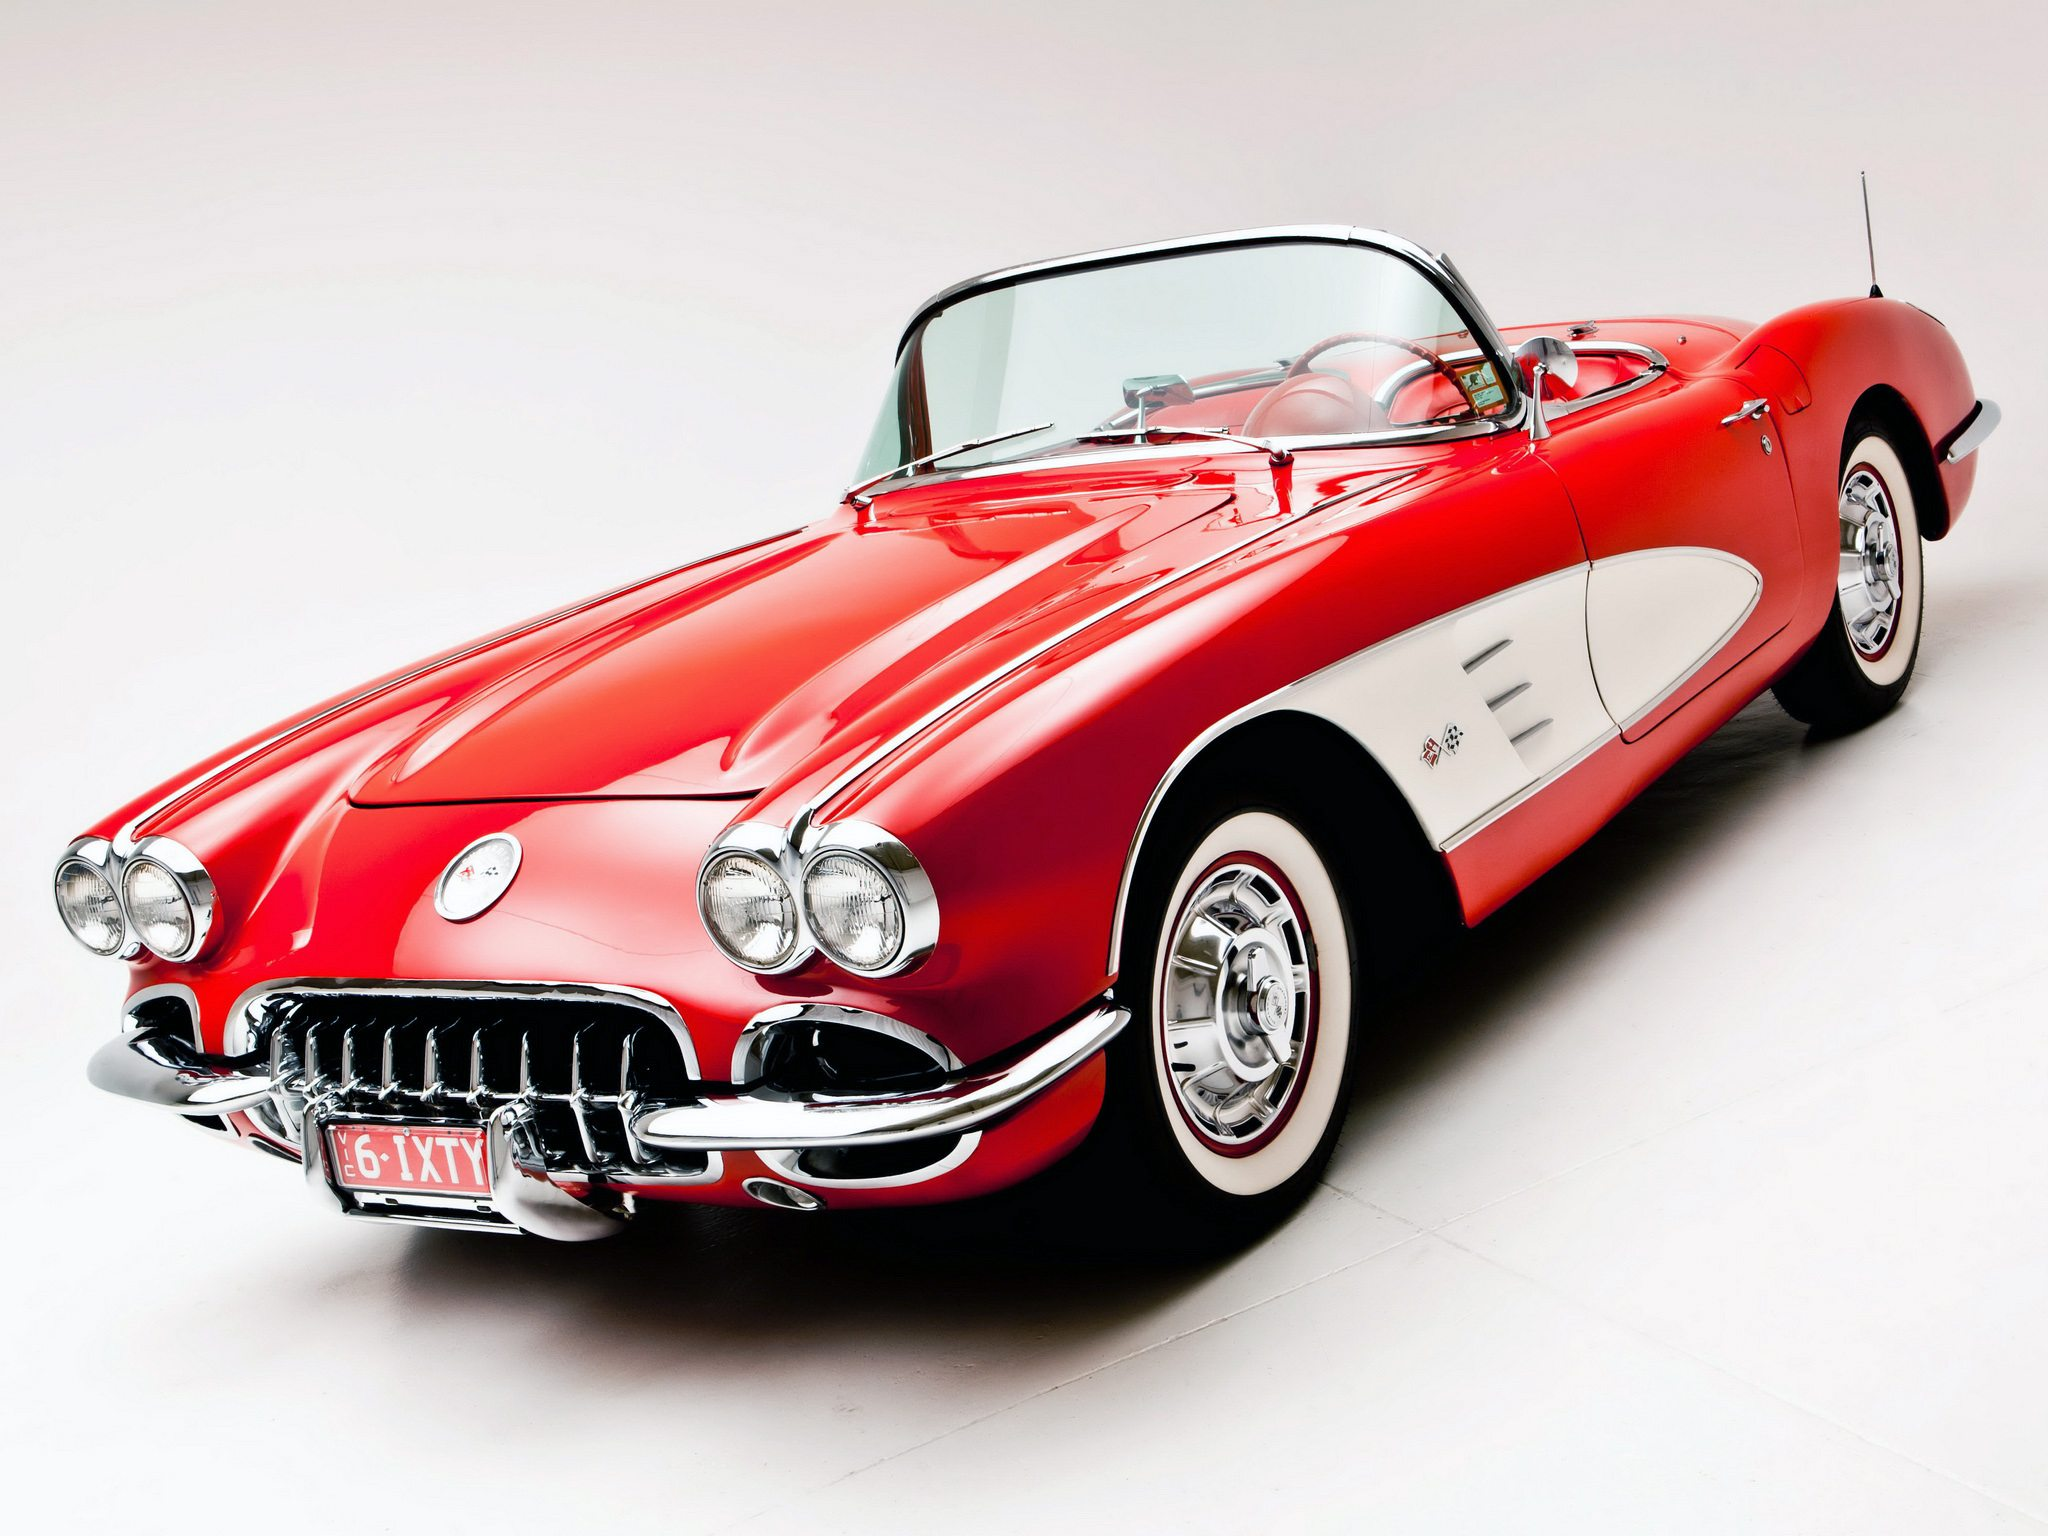 1958 c1 corvette ultimate guide  overview  specs  vin c6 corvette manual transmission c6 corvette manual transmission fluid